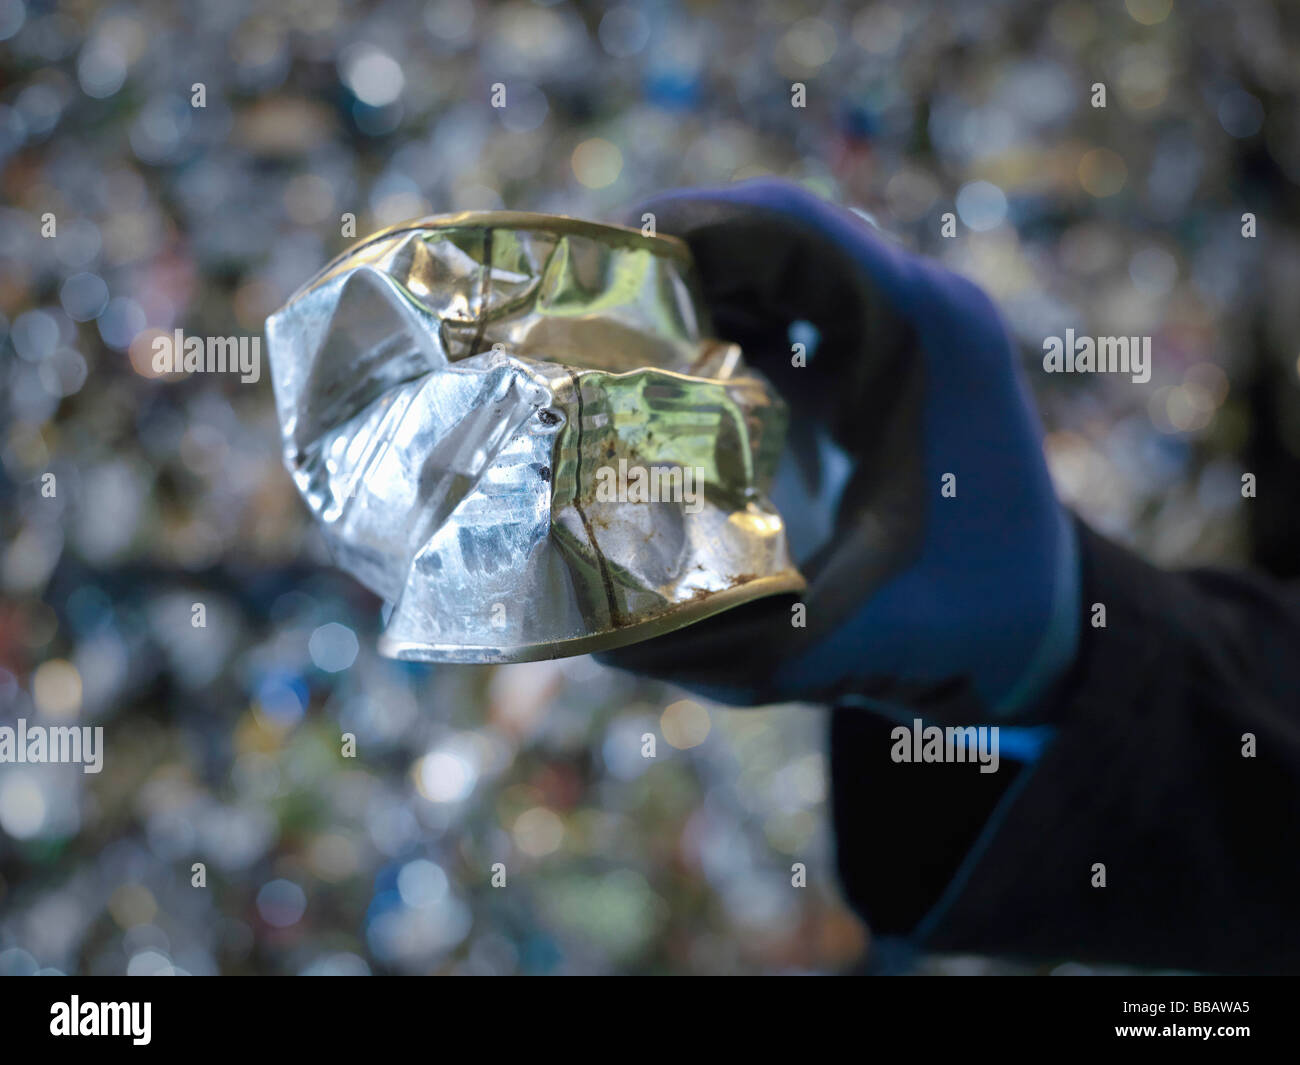 Worker Holding Crushed Tin Can - Stock Image